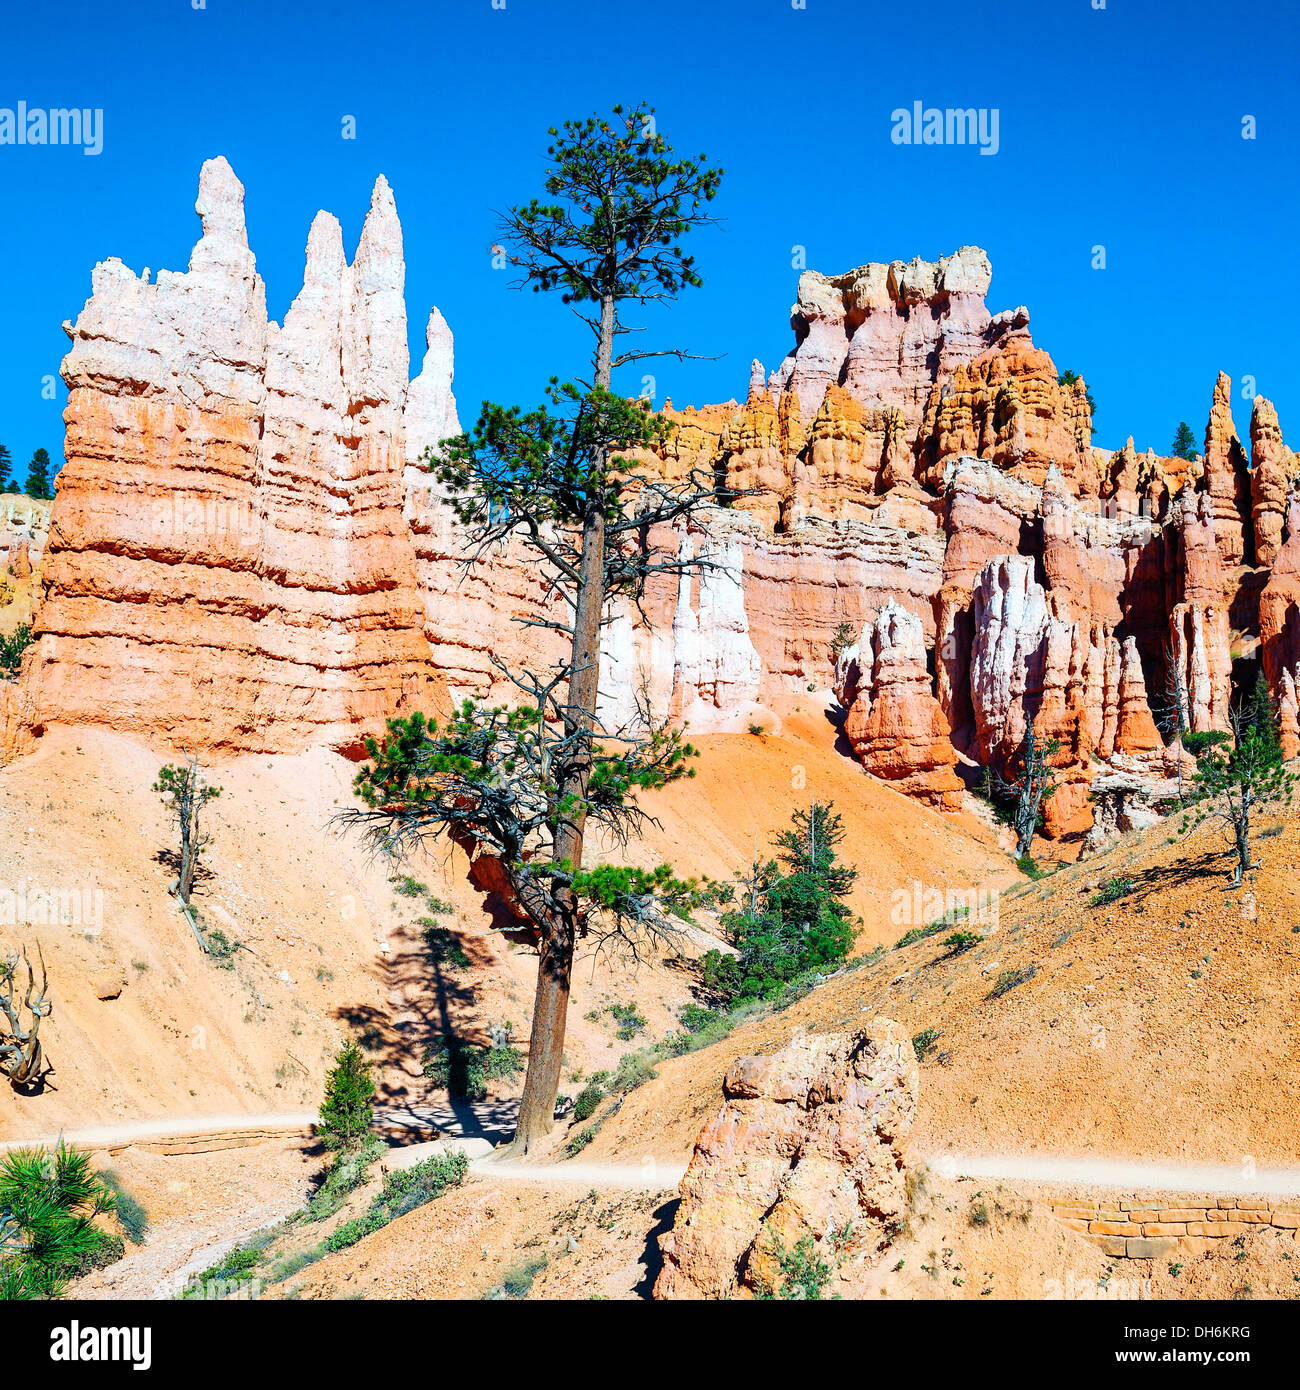 spectacular Hoodoo rock spires of Bryce Canyon, Utah, USA - Stock Image